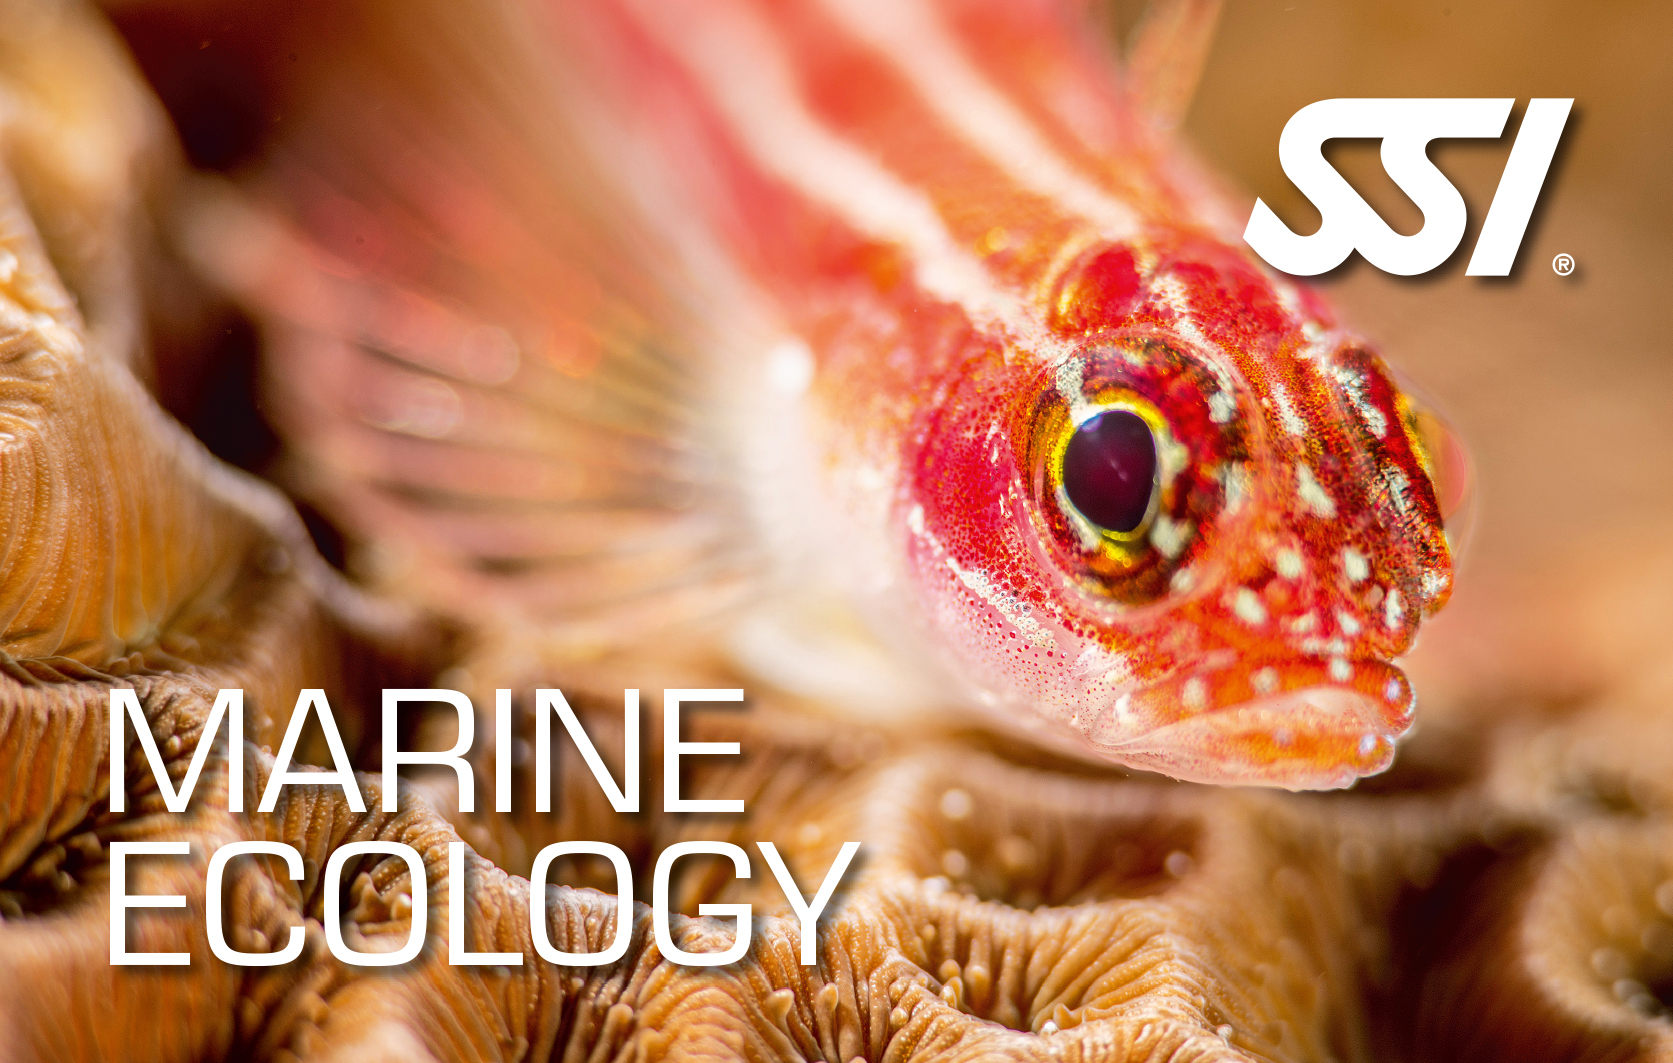 SSI Marine Ecology certification card